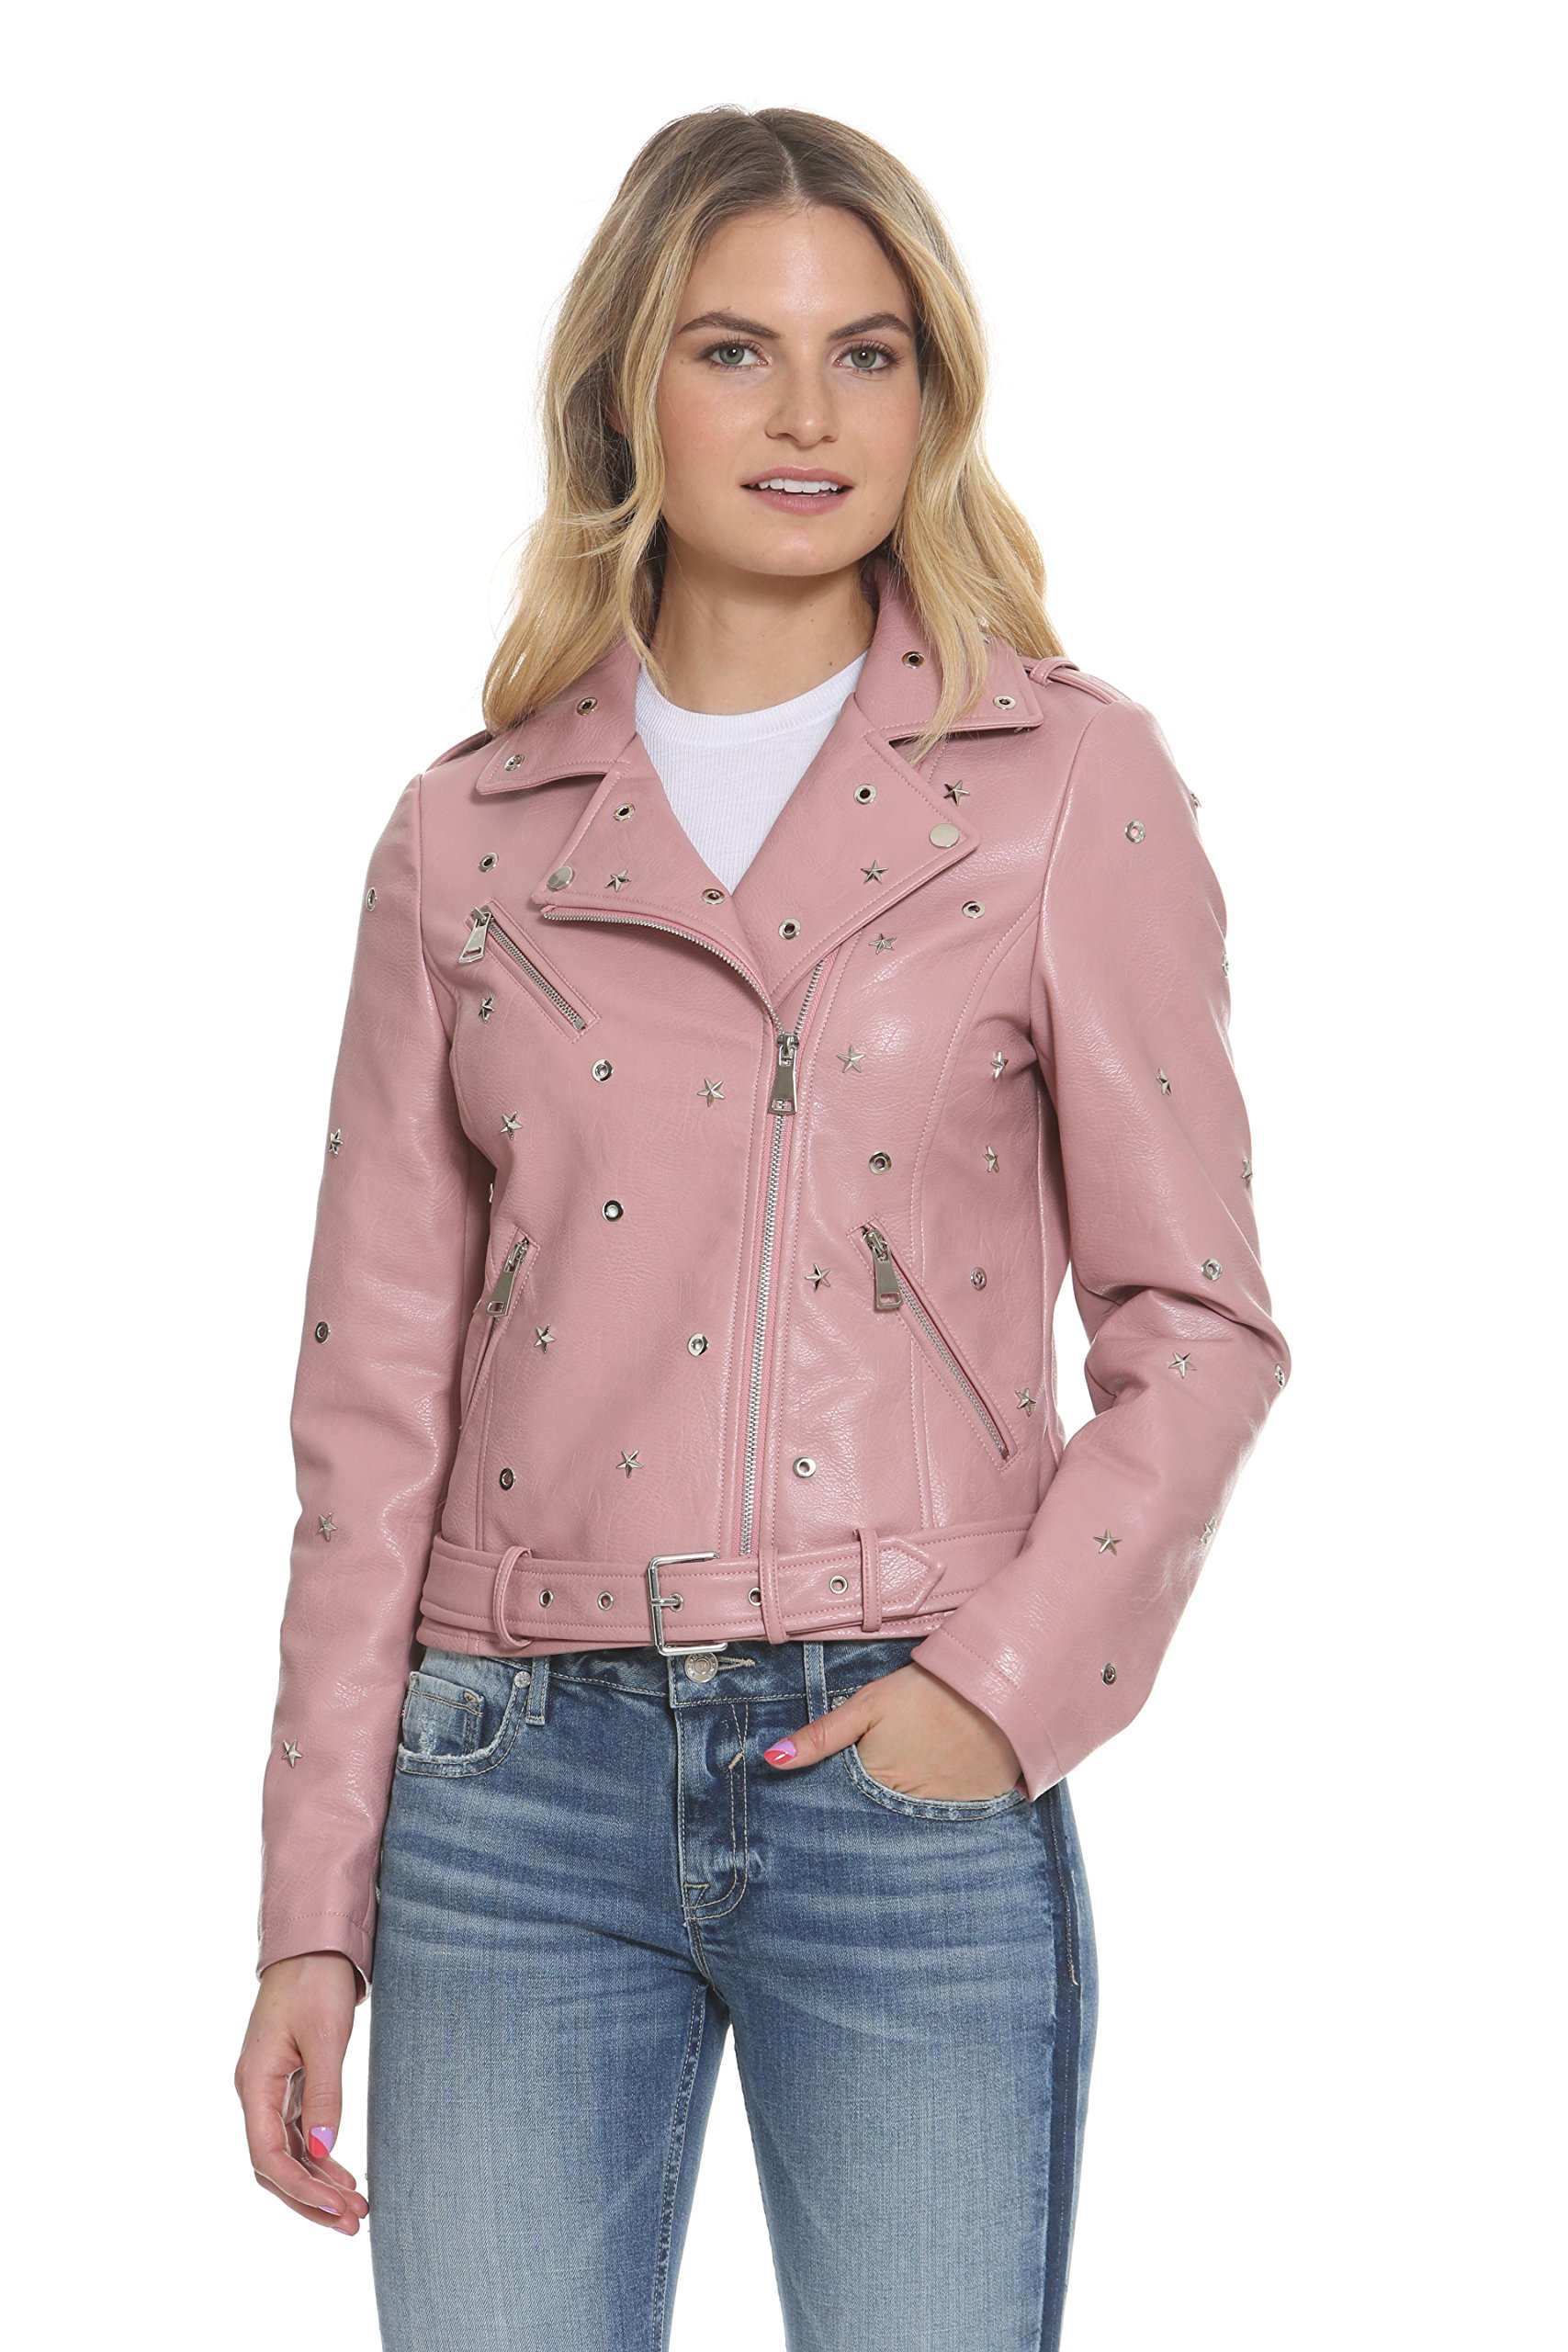 VIGOSS Women's Studded Moto Jacket, Pink, L